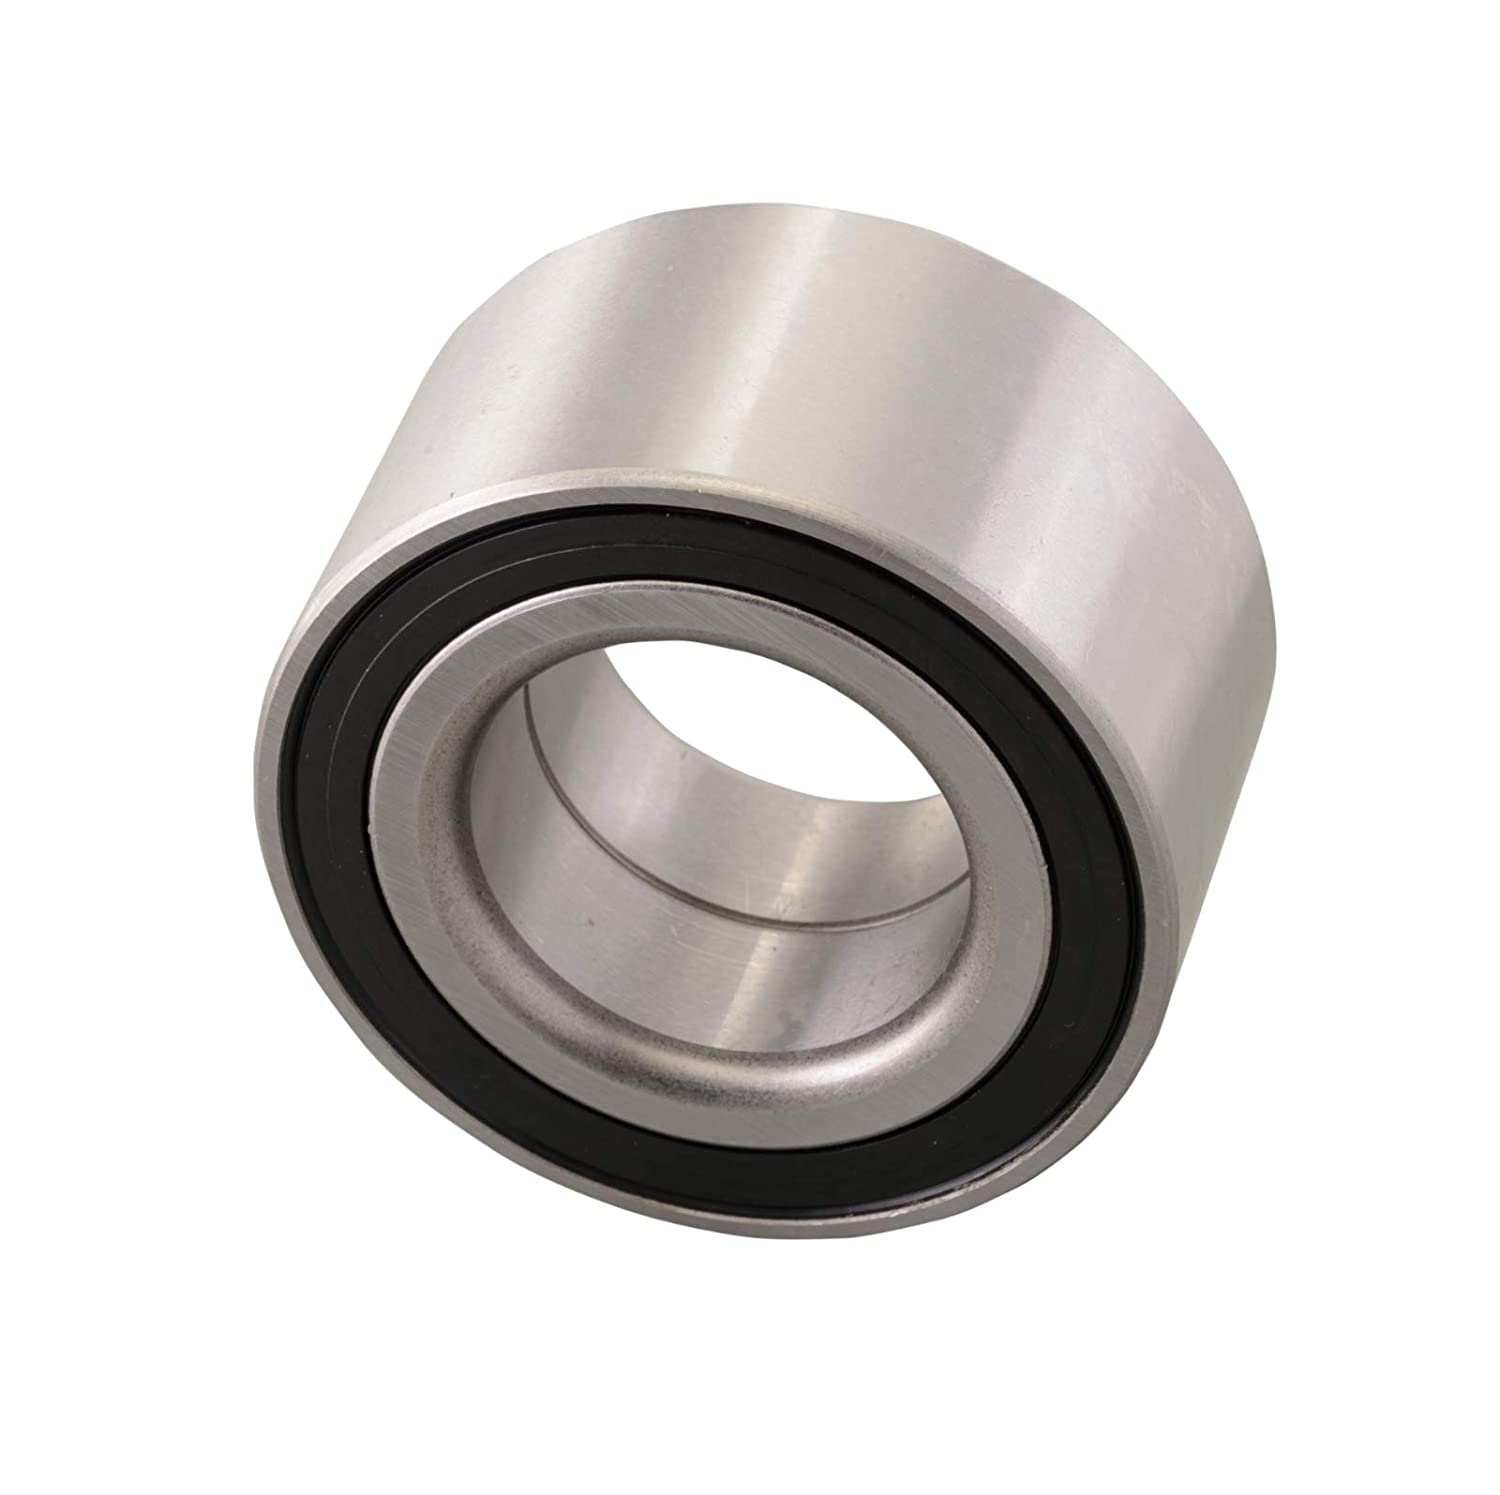 East Lake Axle rear wheel bearing compatible with Gem EM1400 M1400 2014 2015 2016 2017 2018 2019 3514635